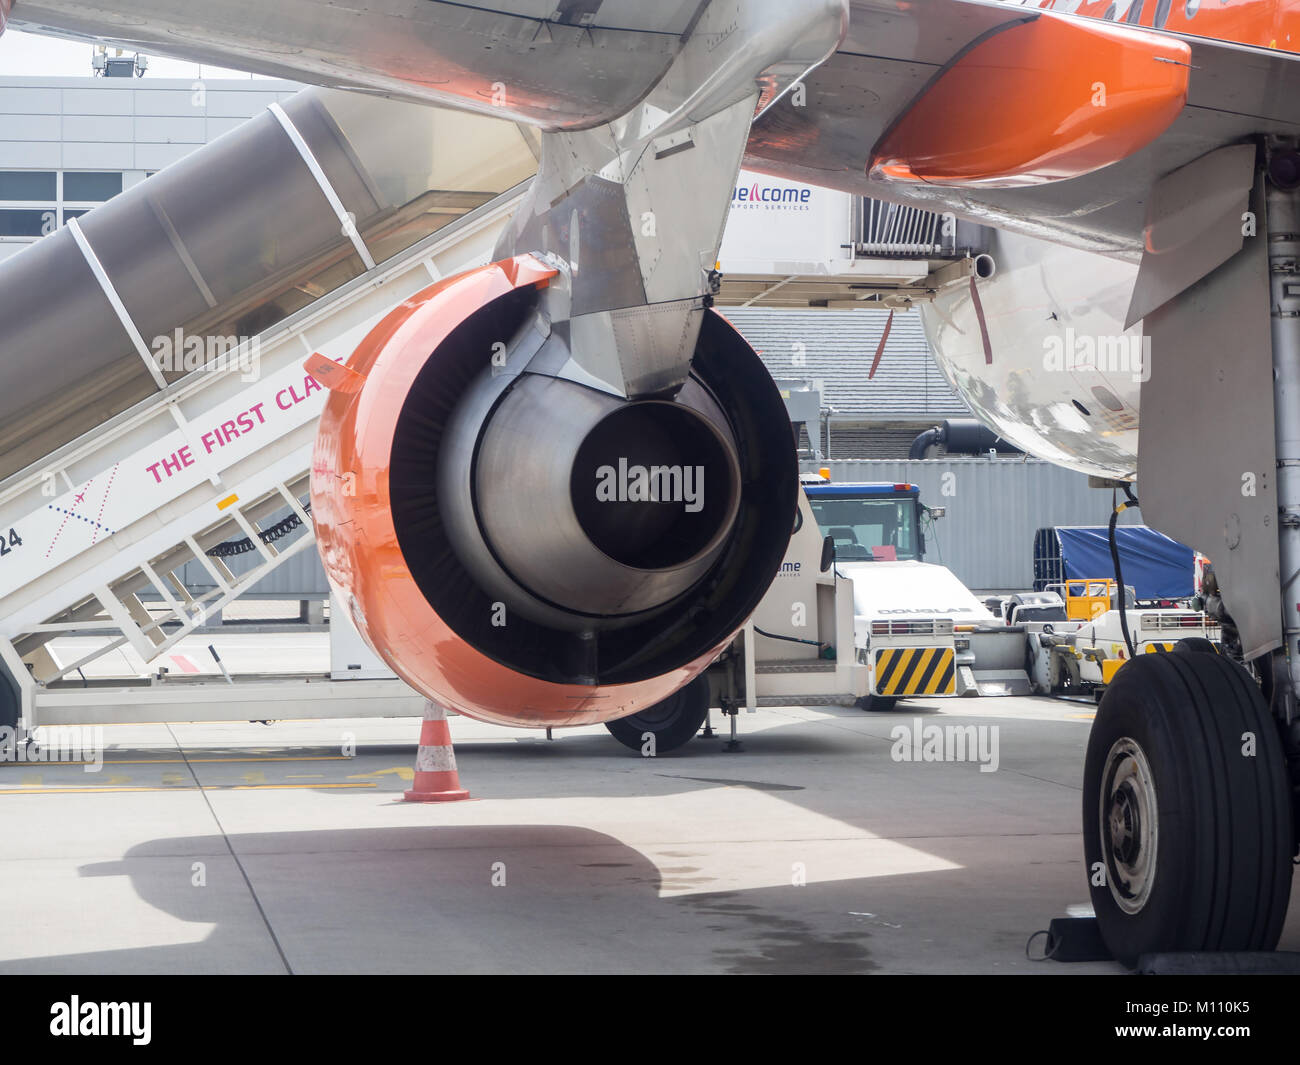 Krakow, Poland - June 6, 2017: Exhaust of the Rolls_Royce  jet engine, pylon, wing , landing gear of Airbus a320 - Stock Image